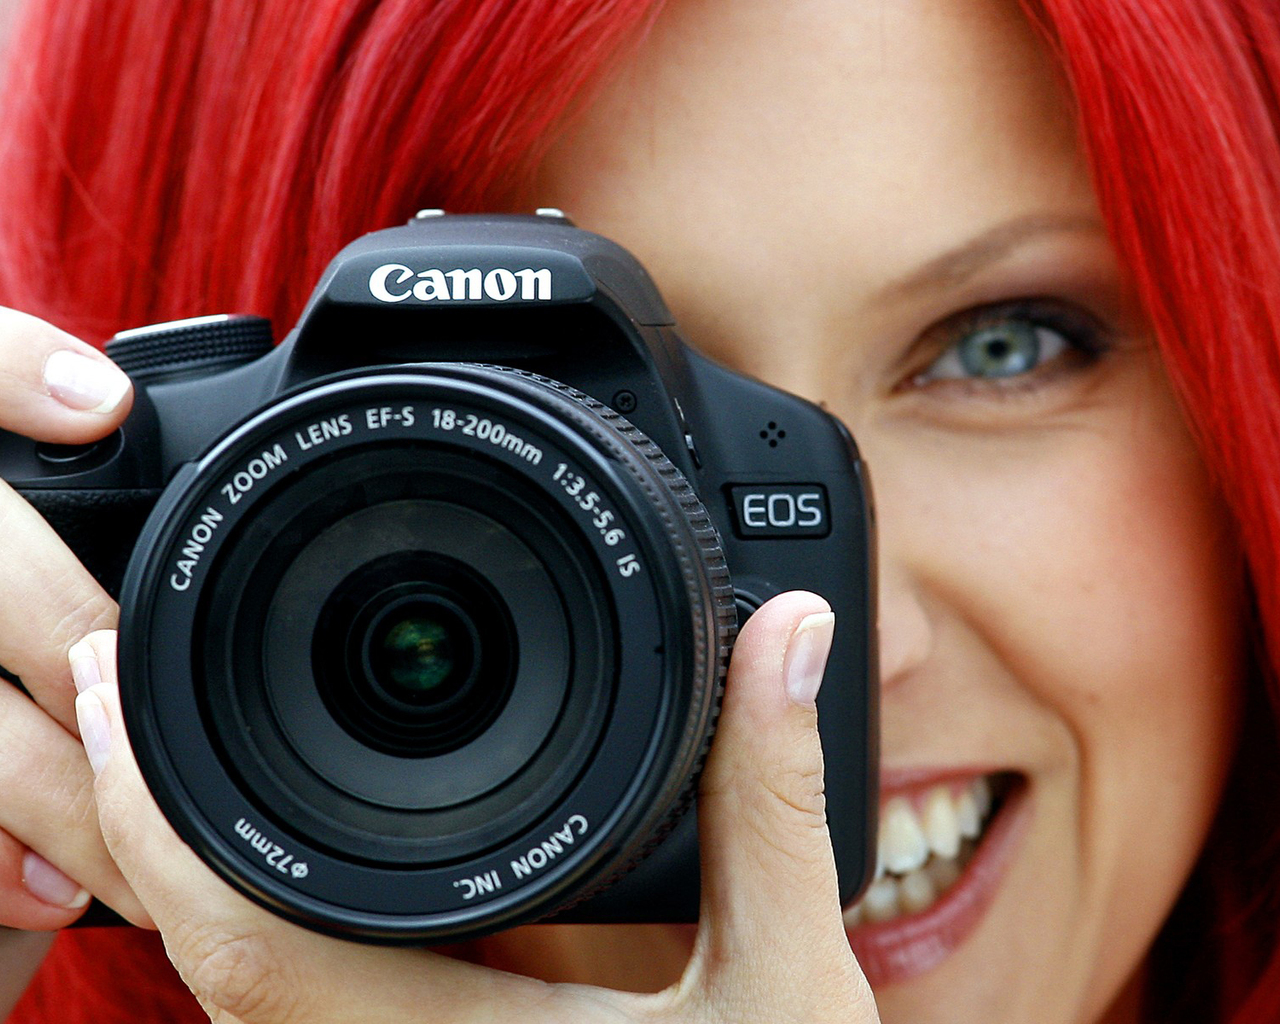 Red Hair Girl with Photo Camera